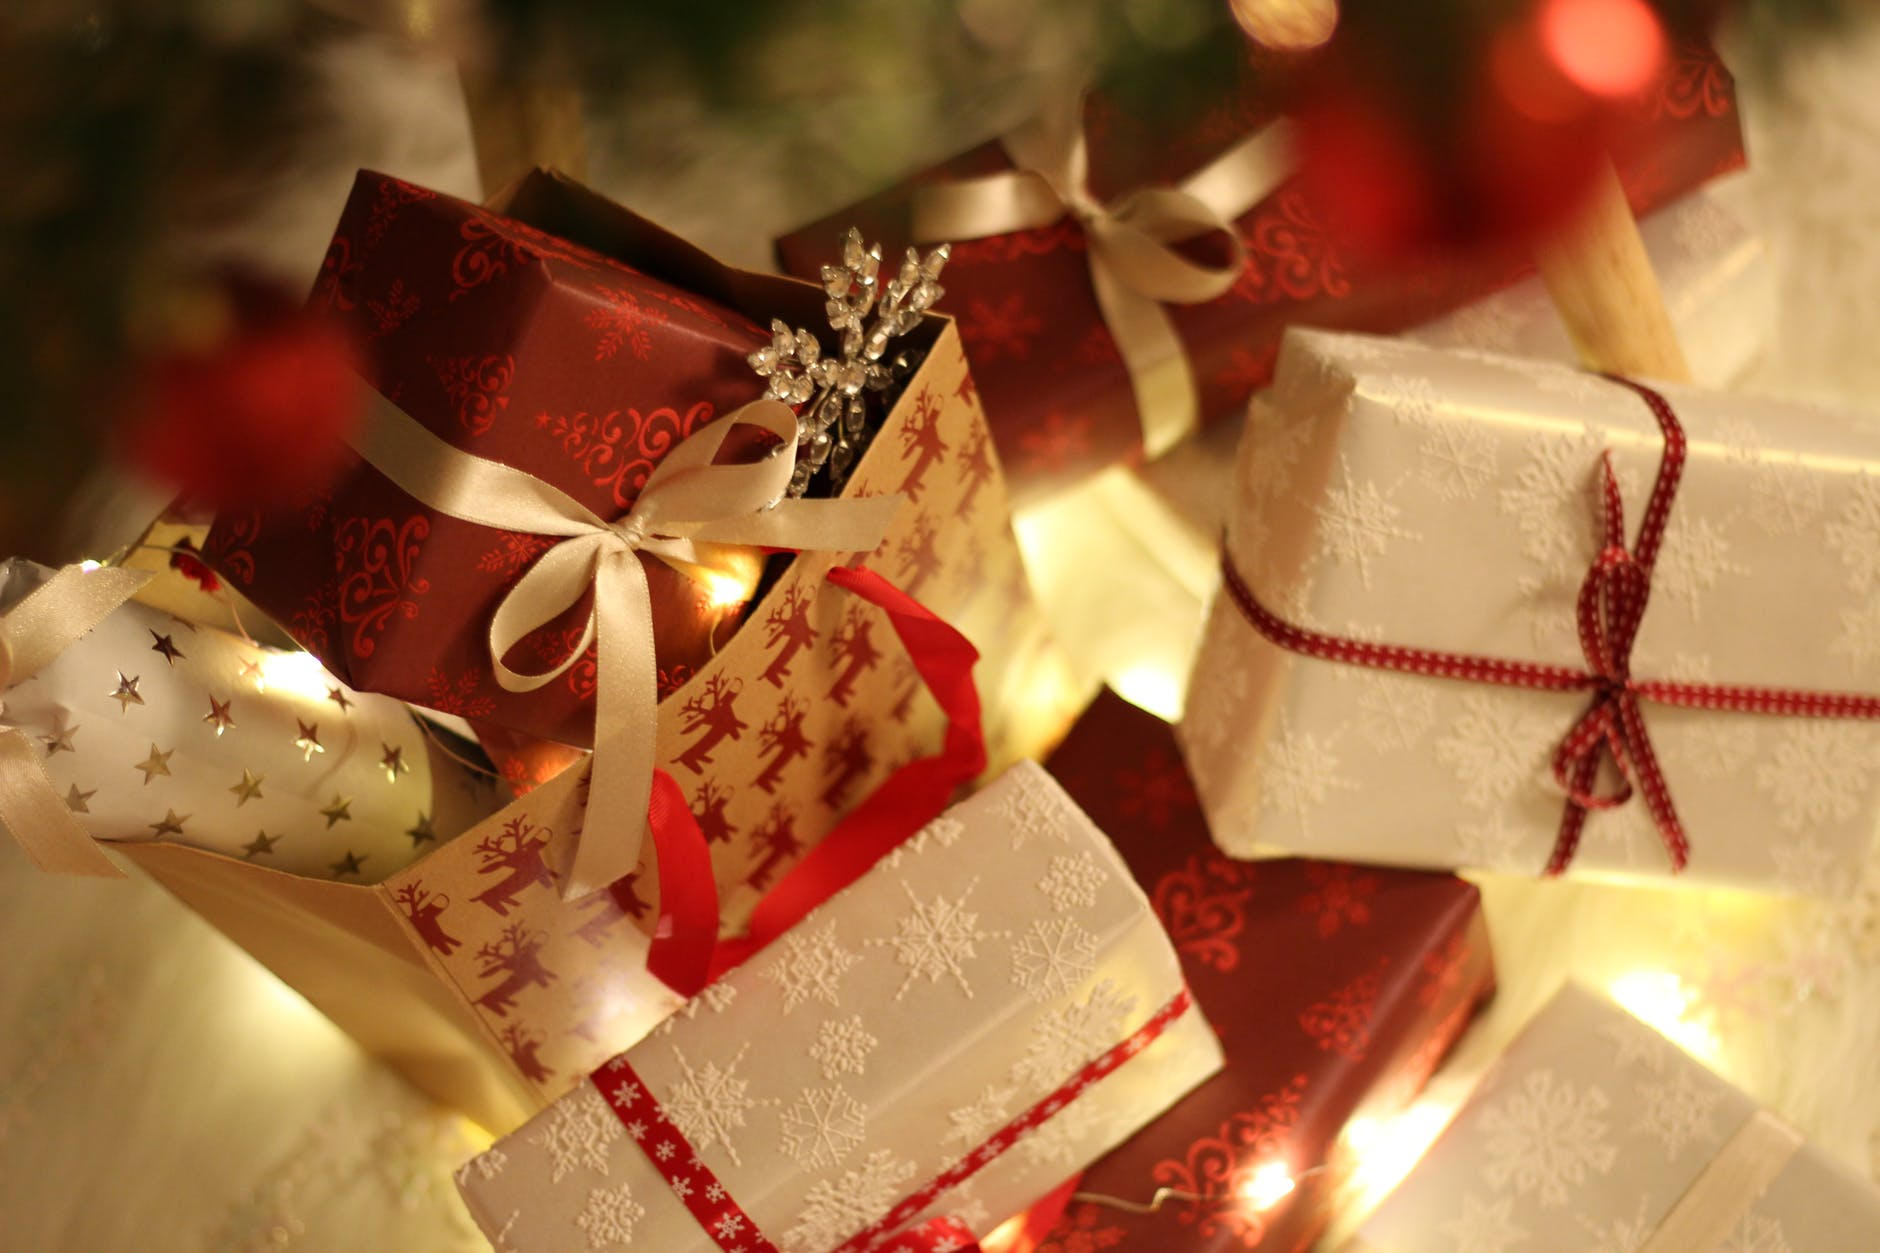 Christmas Gifts a Canadian Tradition See more traditions. #Christmas #presents #wrapping #giving #gifts #canada #tradition